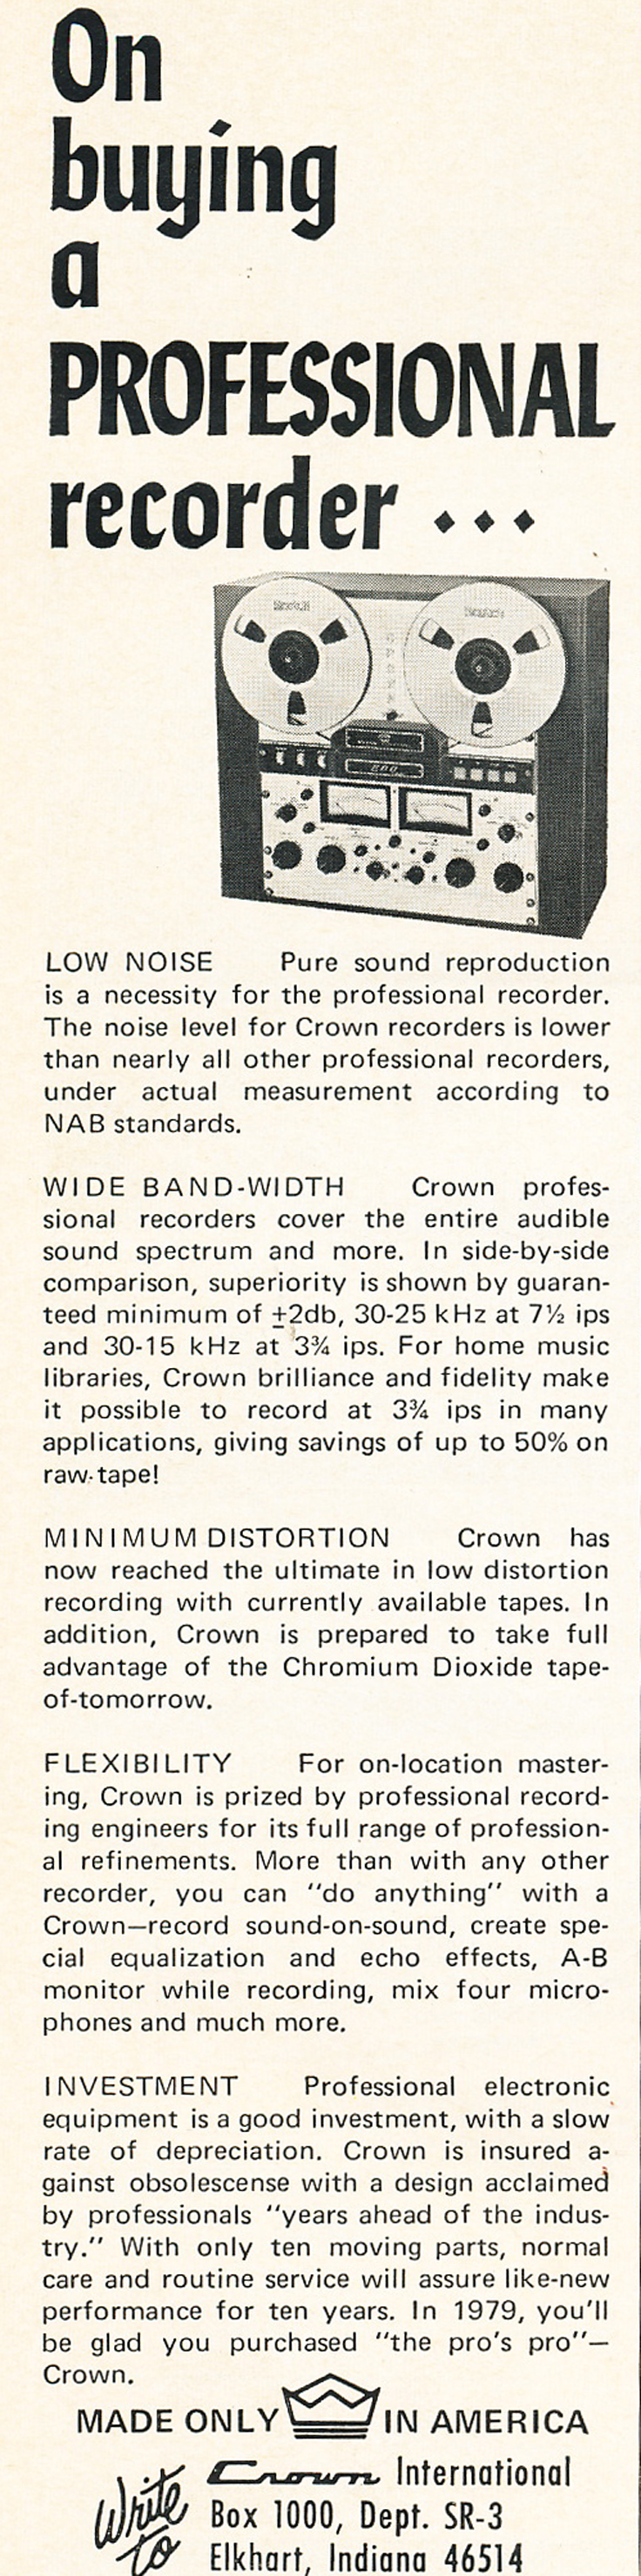 1969 ad for Crown professional reel to reel tape recorders in Reel2ReelTexas.com's vintage recording collection